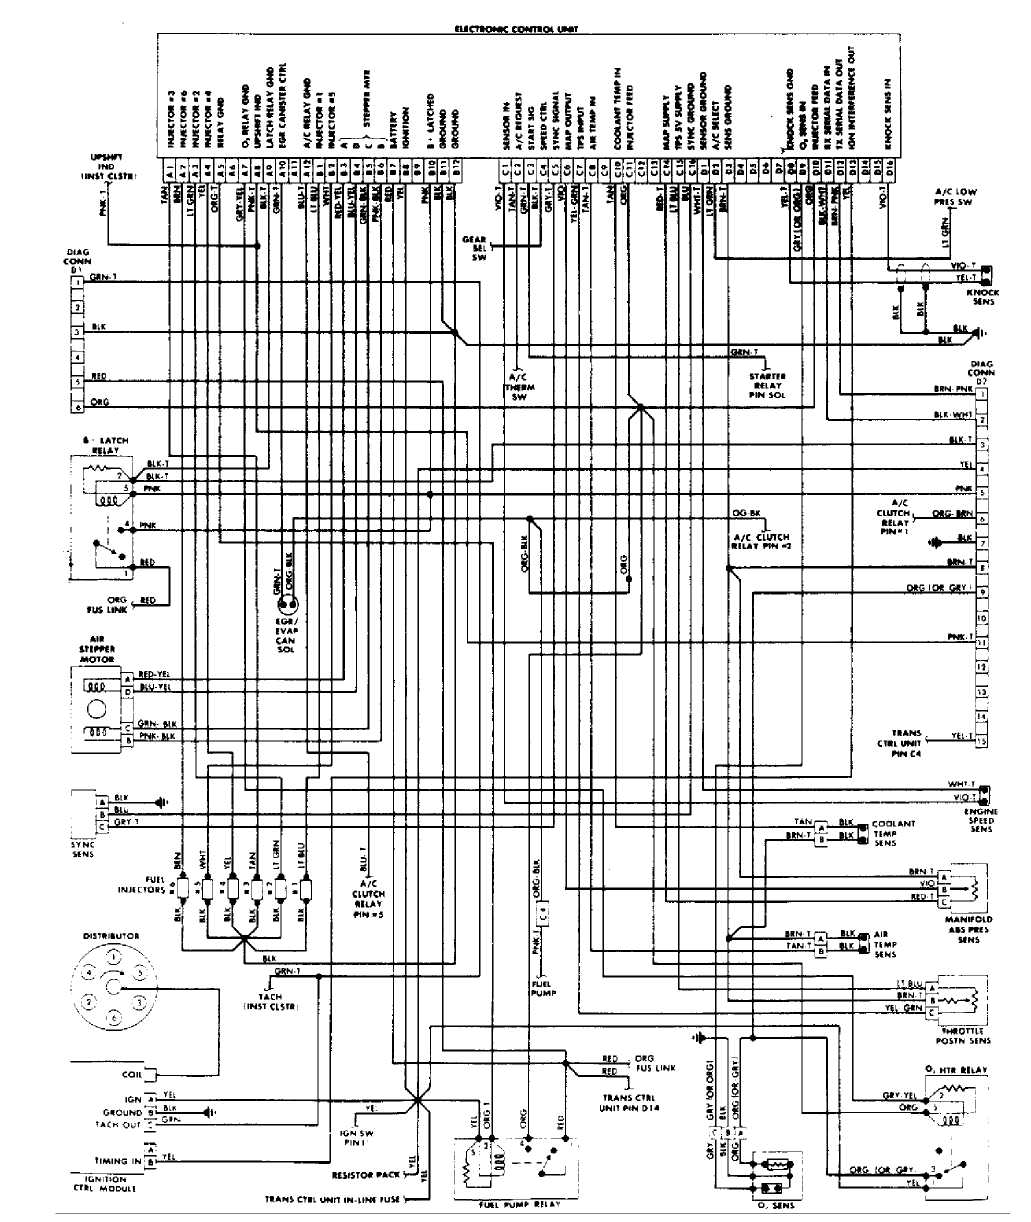 hight resolution of 11 comanche multi point fuel injection wiring diagram wiring diagram not available for cherokee wagoneer models